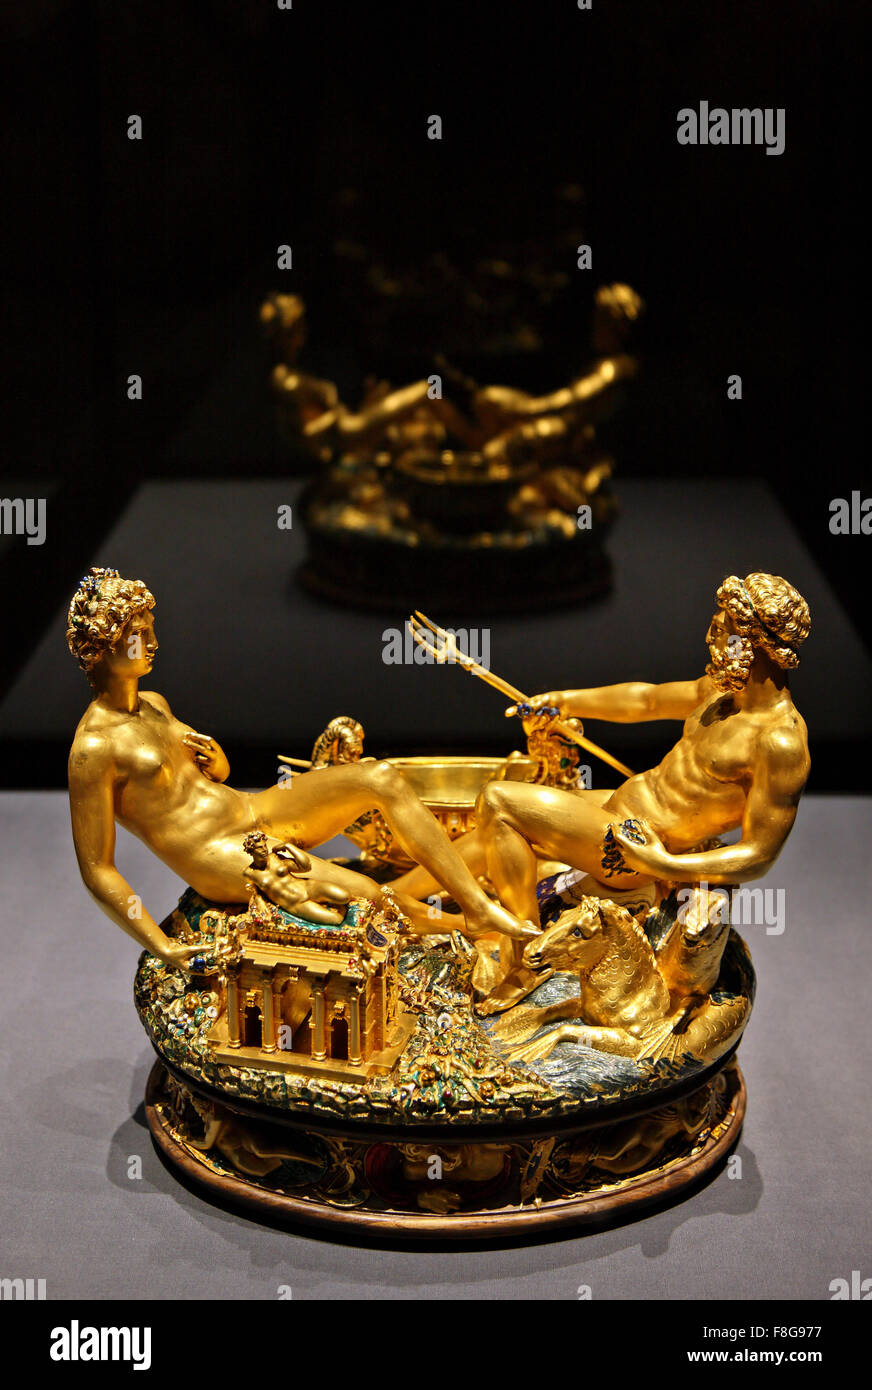 The Cellini Salt Cellar (known as the 'Saliera', Italian for salt cellar) in the Kunsthistorisches Museum - Stock Image